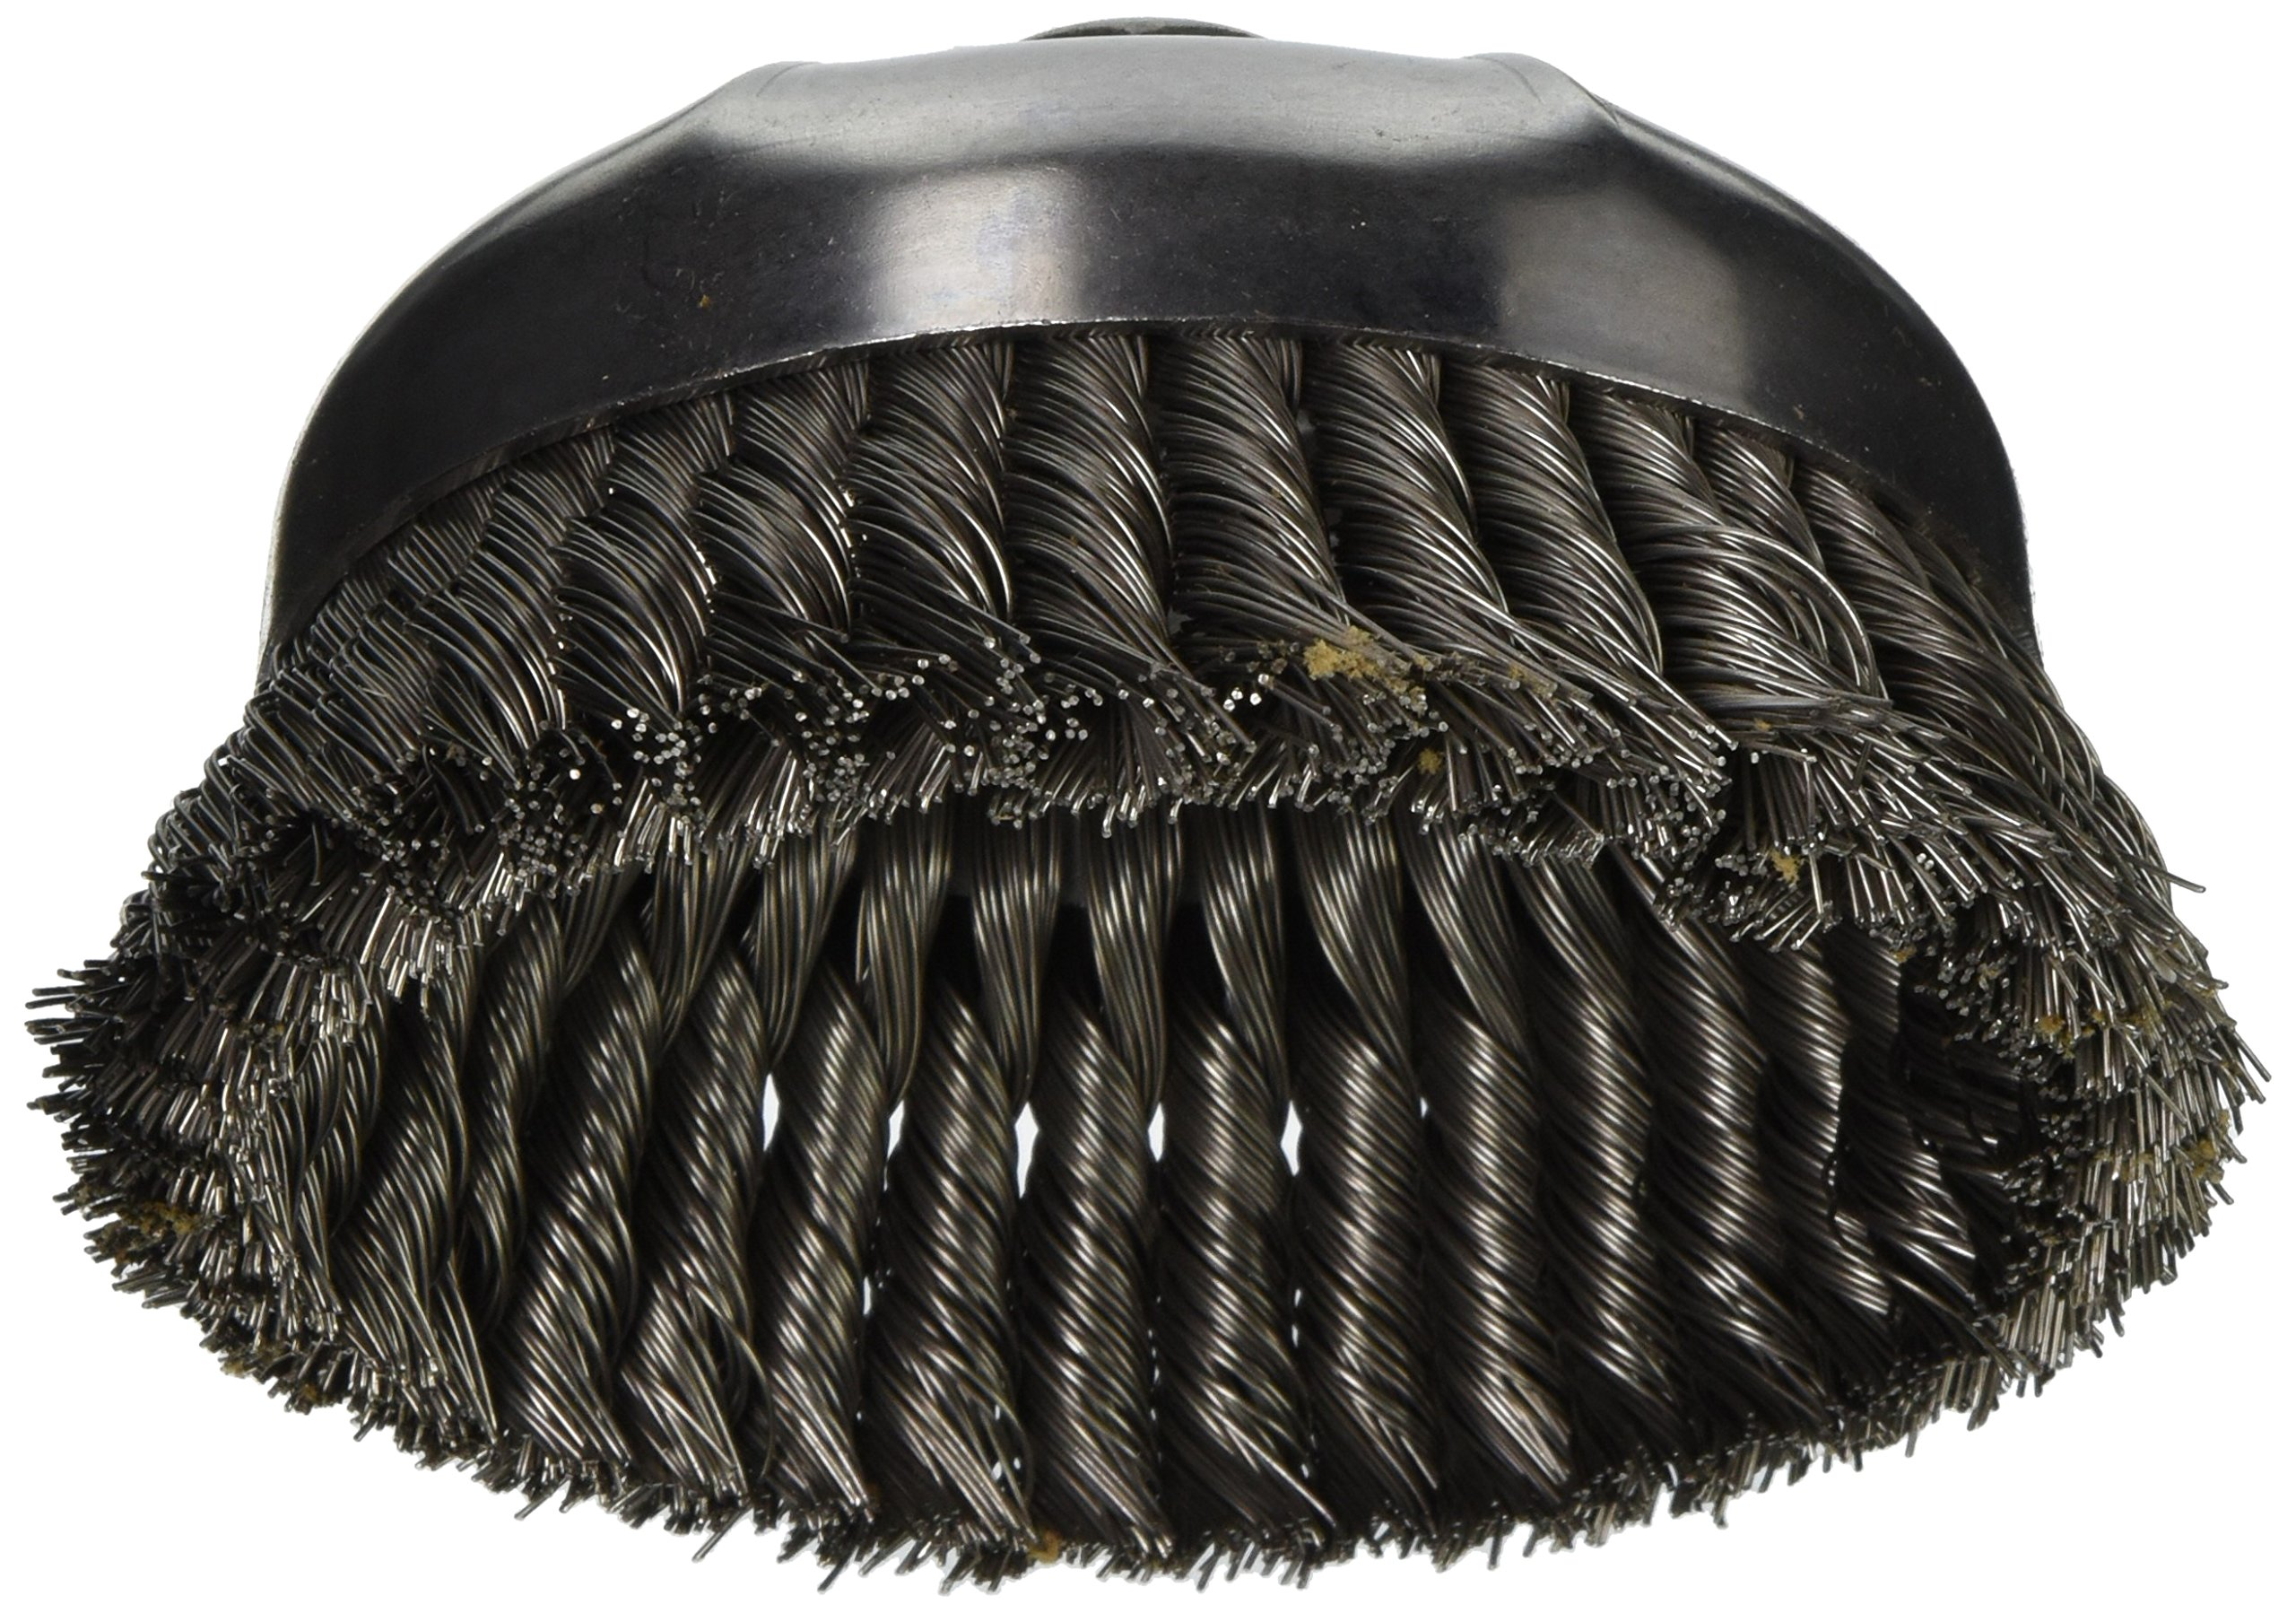 Makita 743206-A 6-Inch Knot-Type Wire Brush by Makita